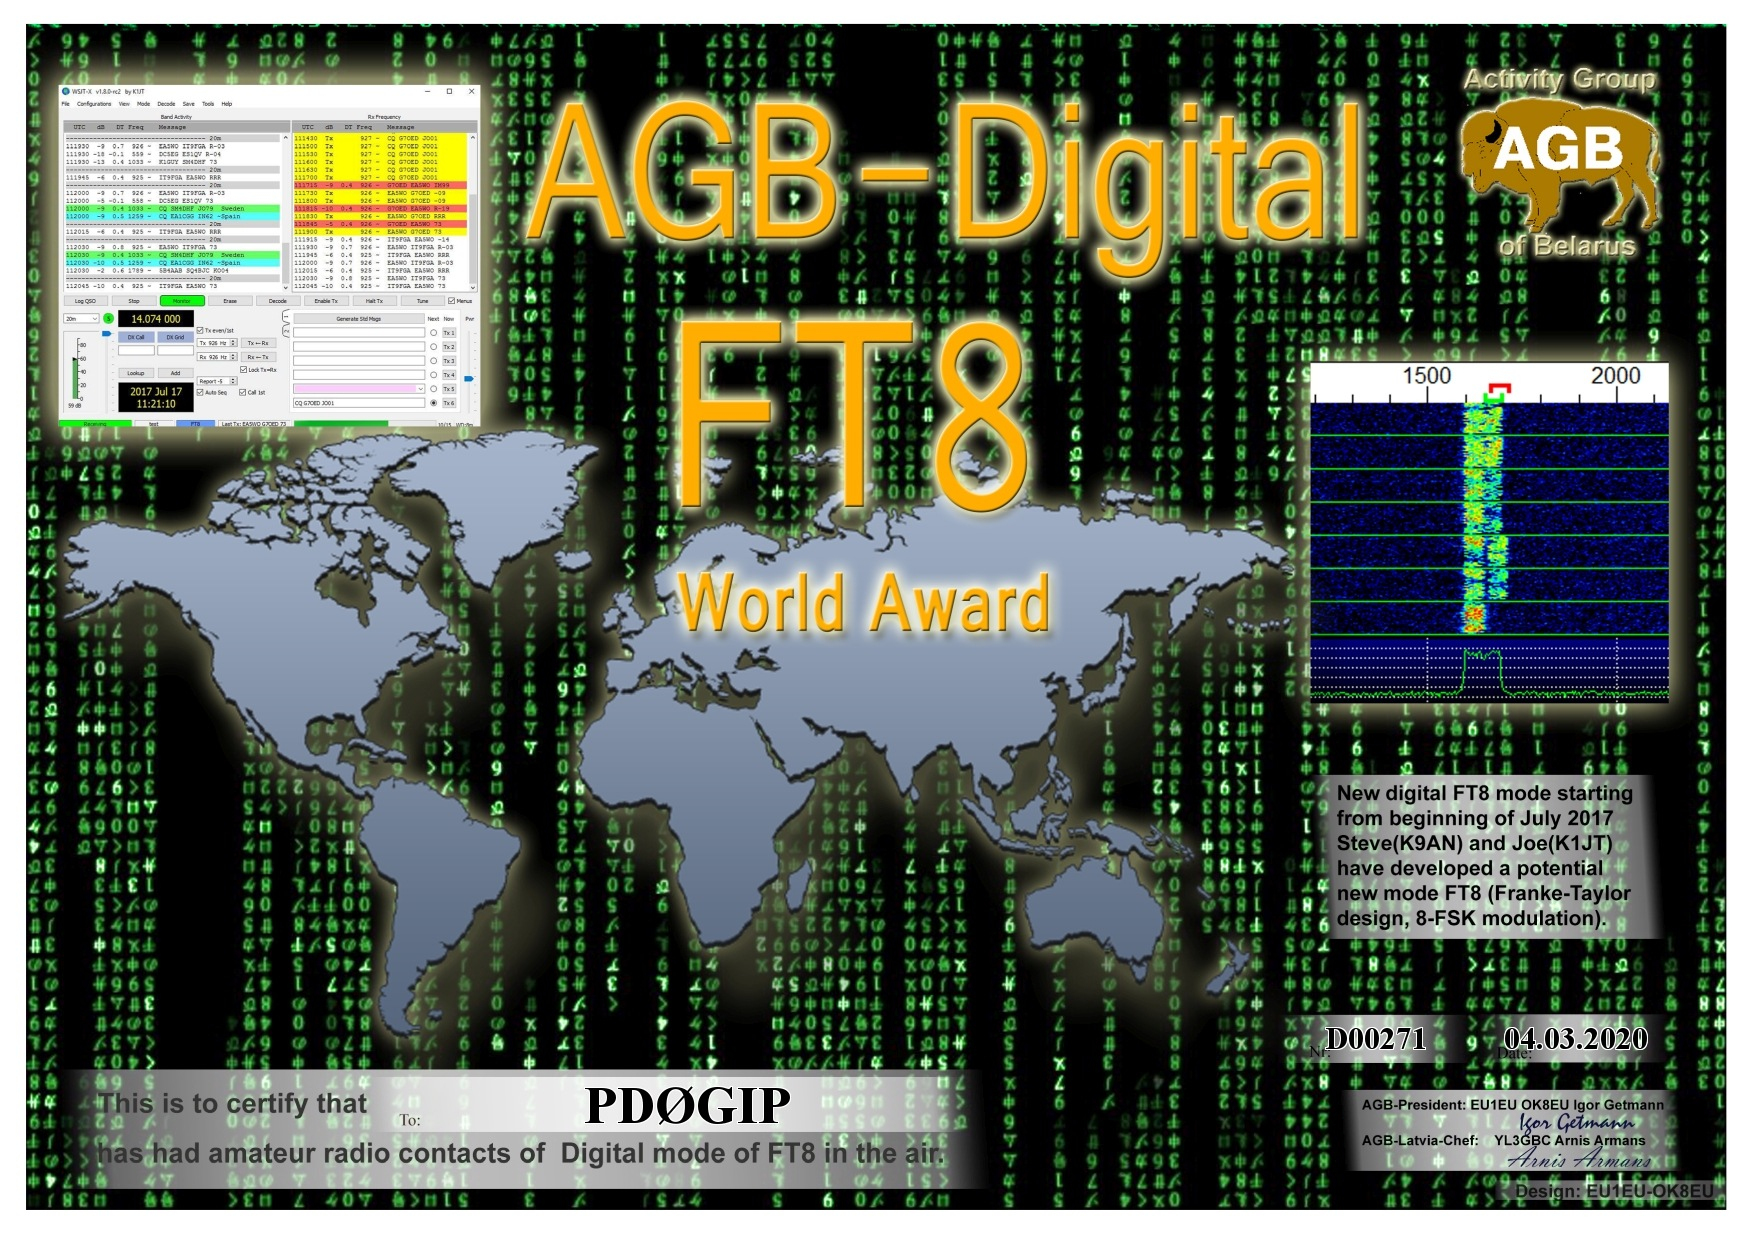 PD0GIP FT8 WORLD BASIC AGB